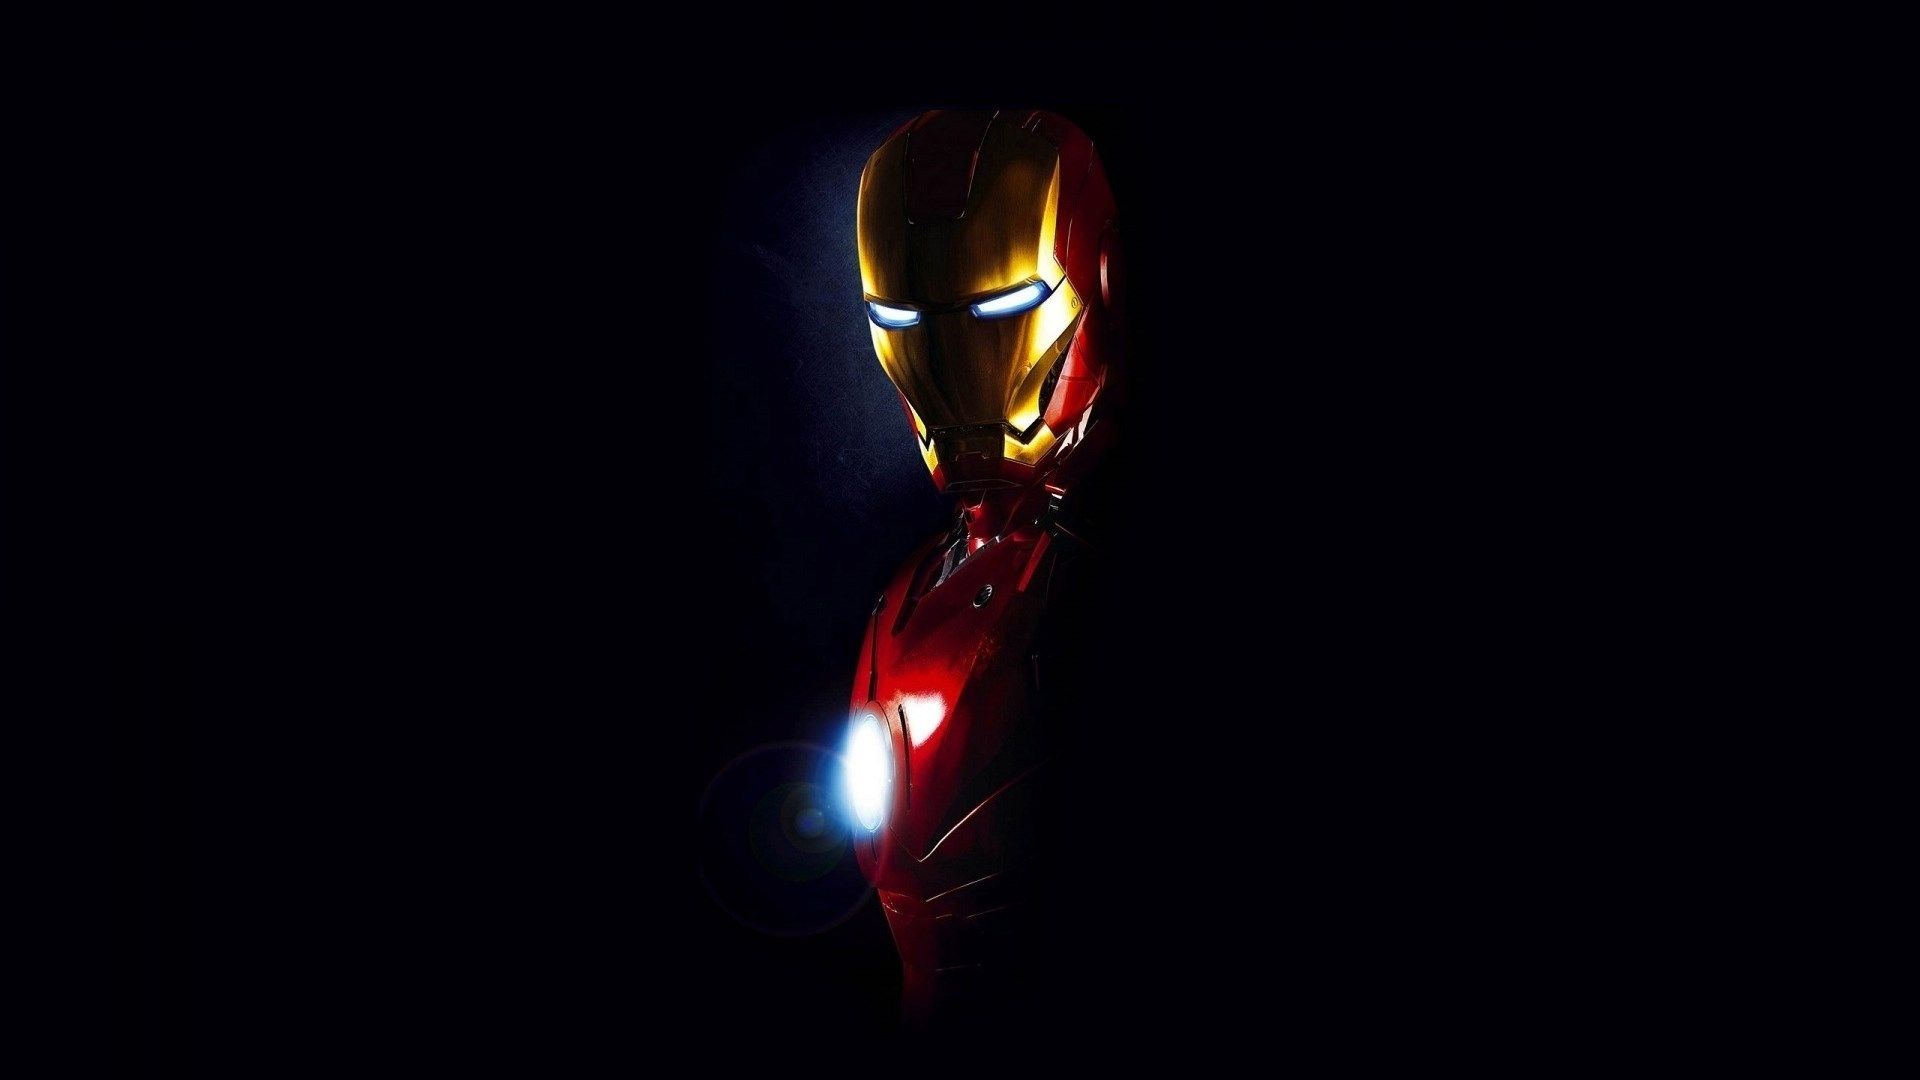 Iron Man Hd Widescreen Wallpapers For Laptop Iron Man Wallpaper Iron Man Hd Wallpaper Man Wallpaper